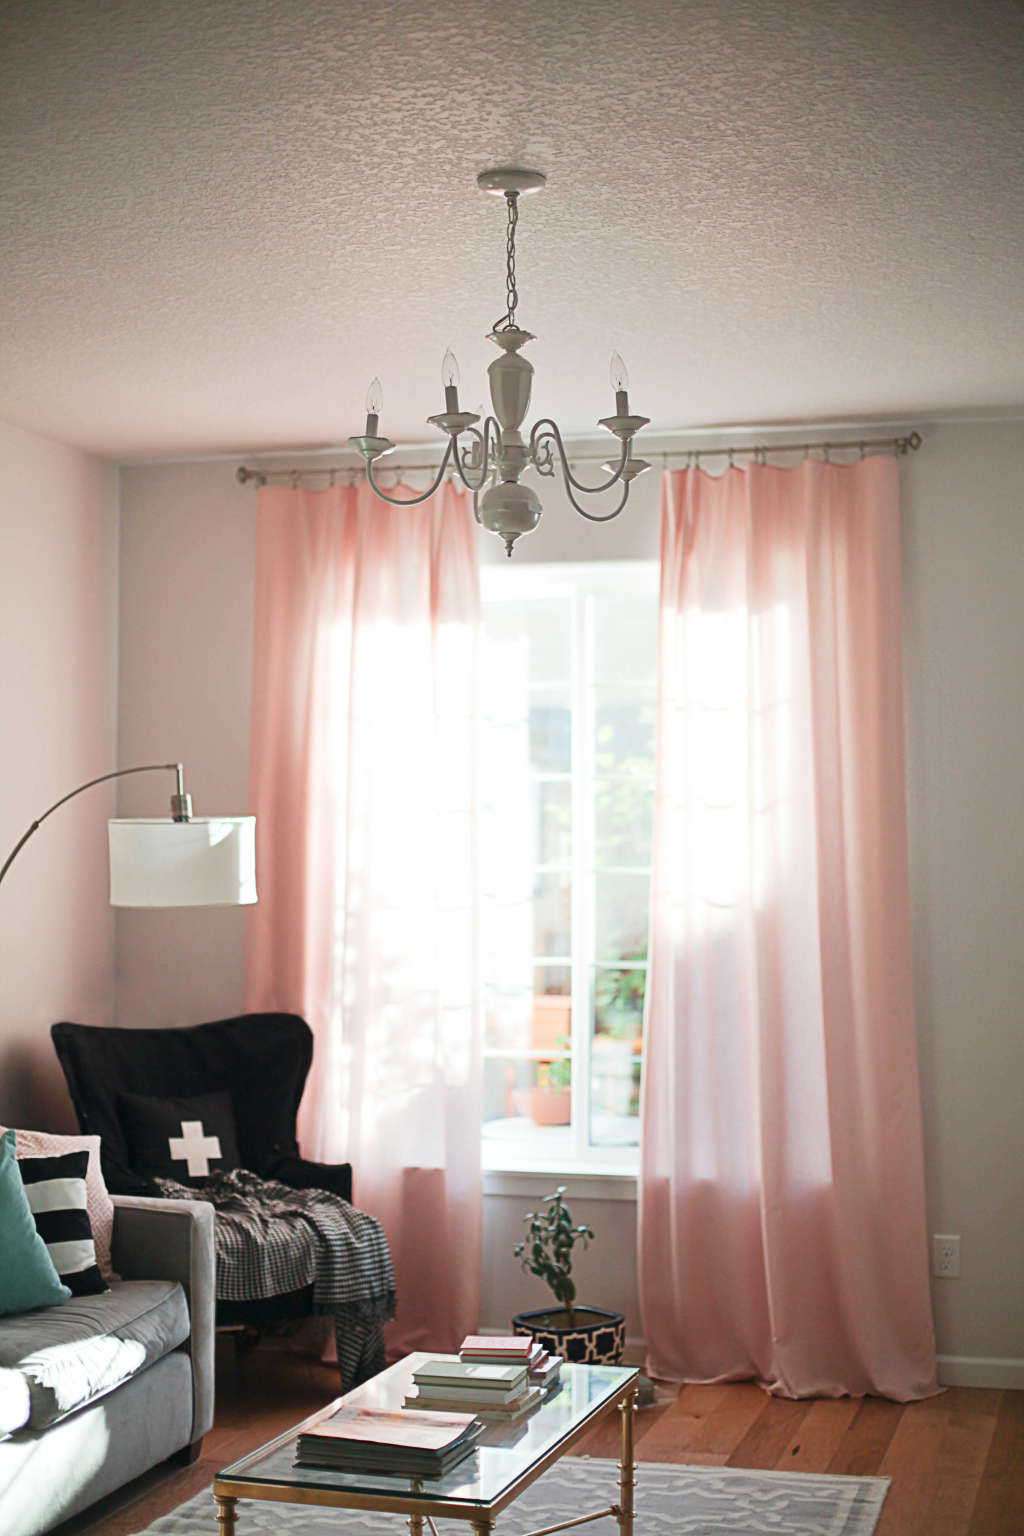 Quick & Affordable Home Makeover Task: Adjust Your Curtain Rods